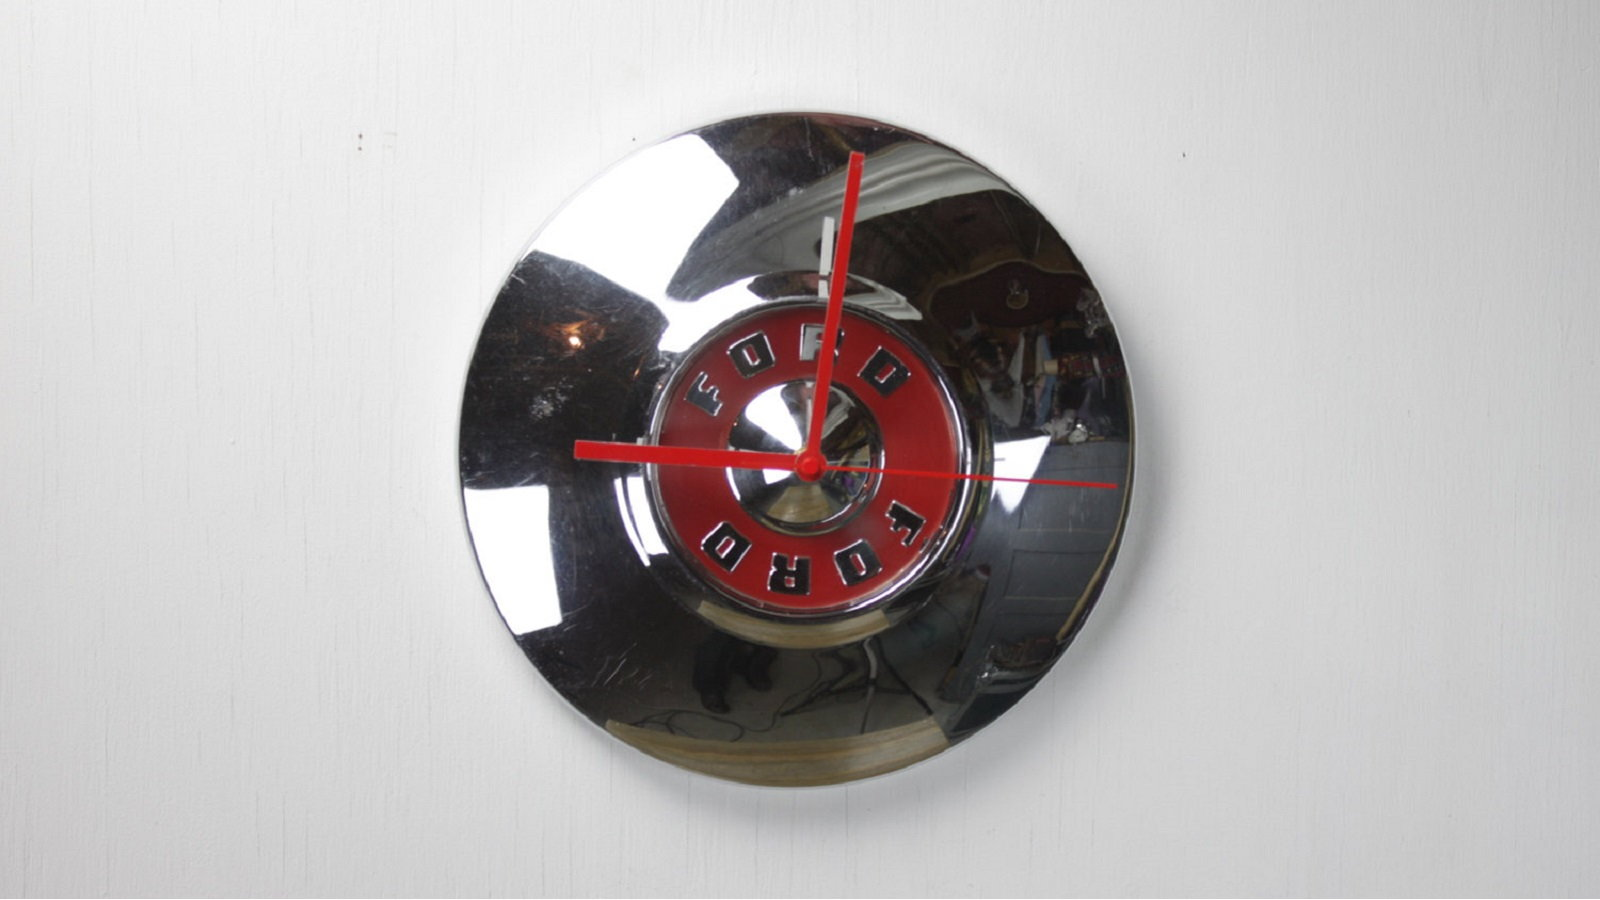 Get creative and turn an old hub cap into a clock.